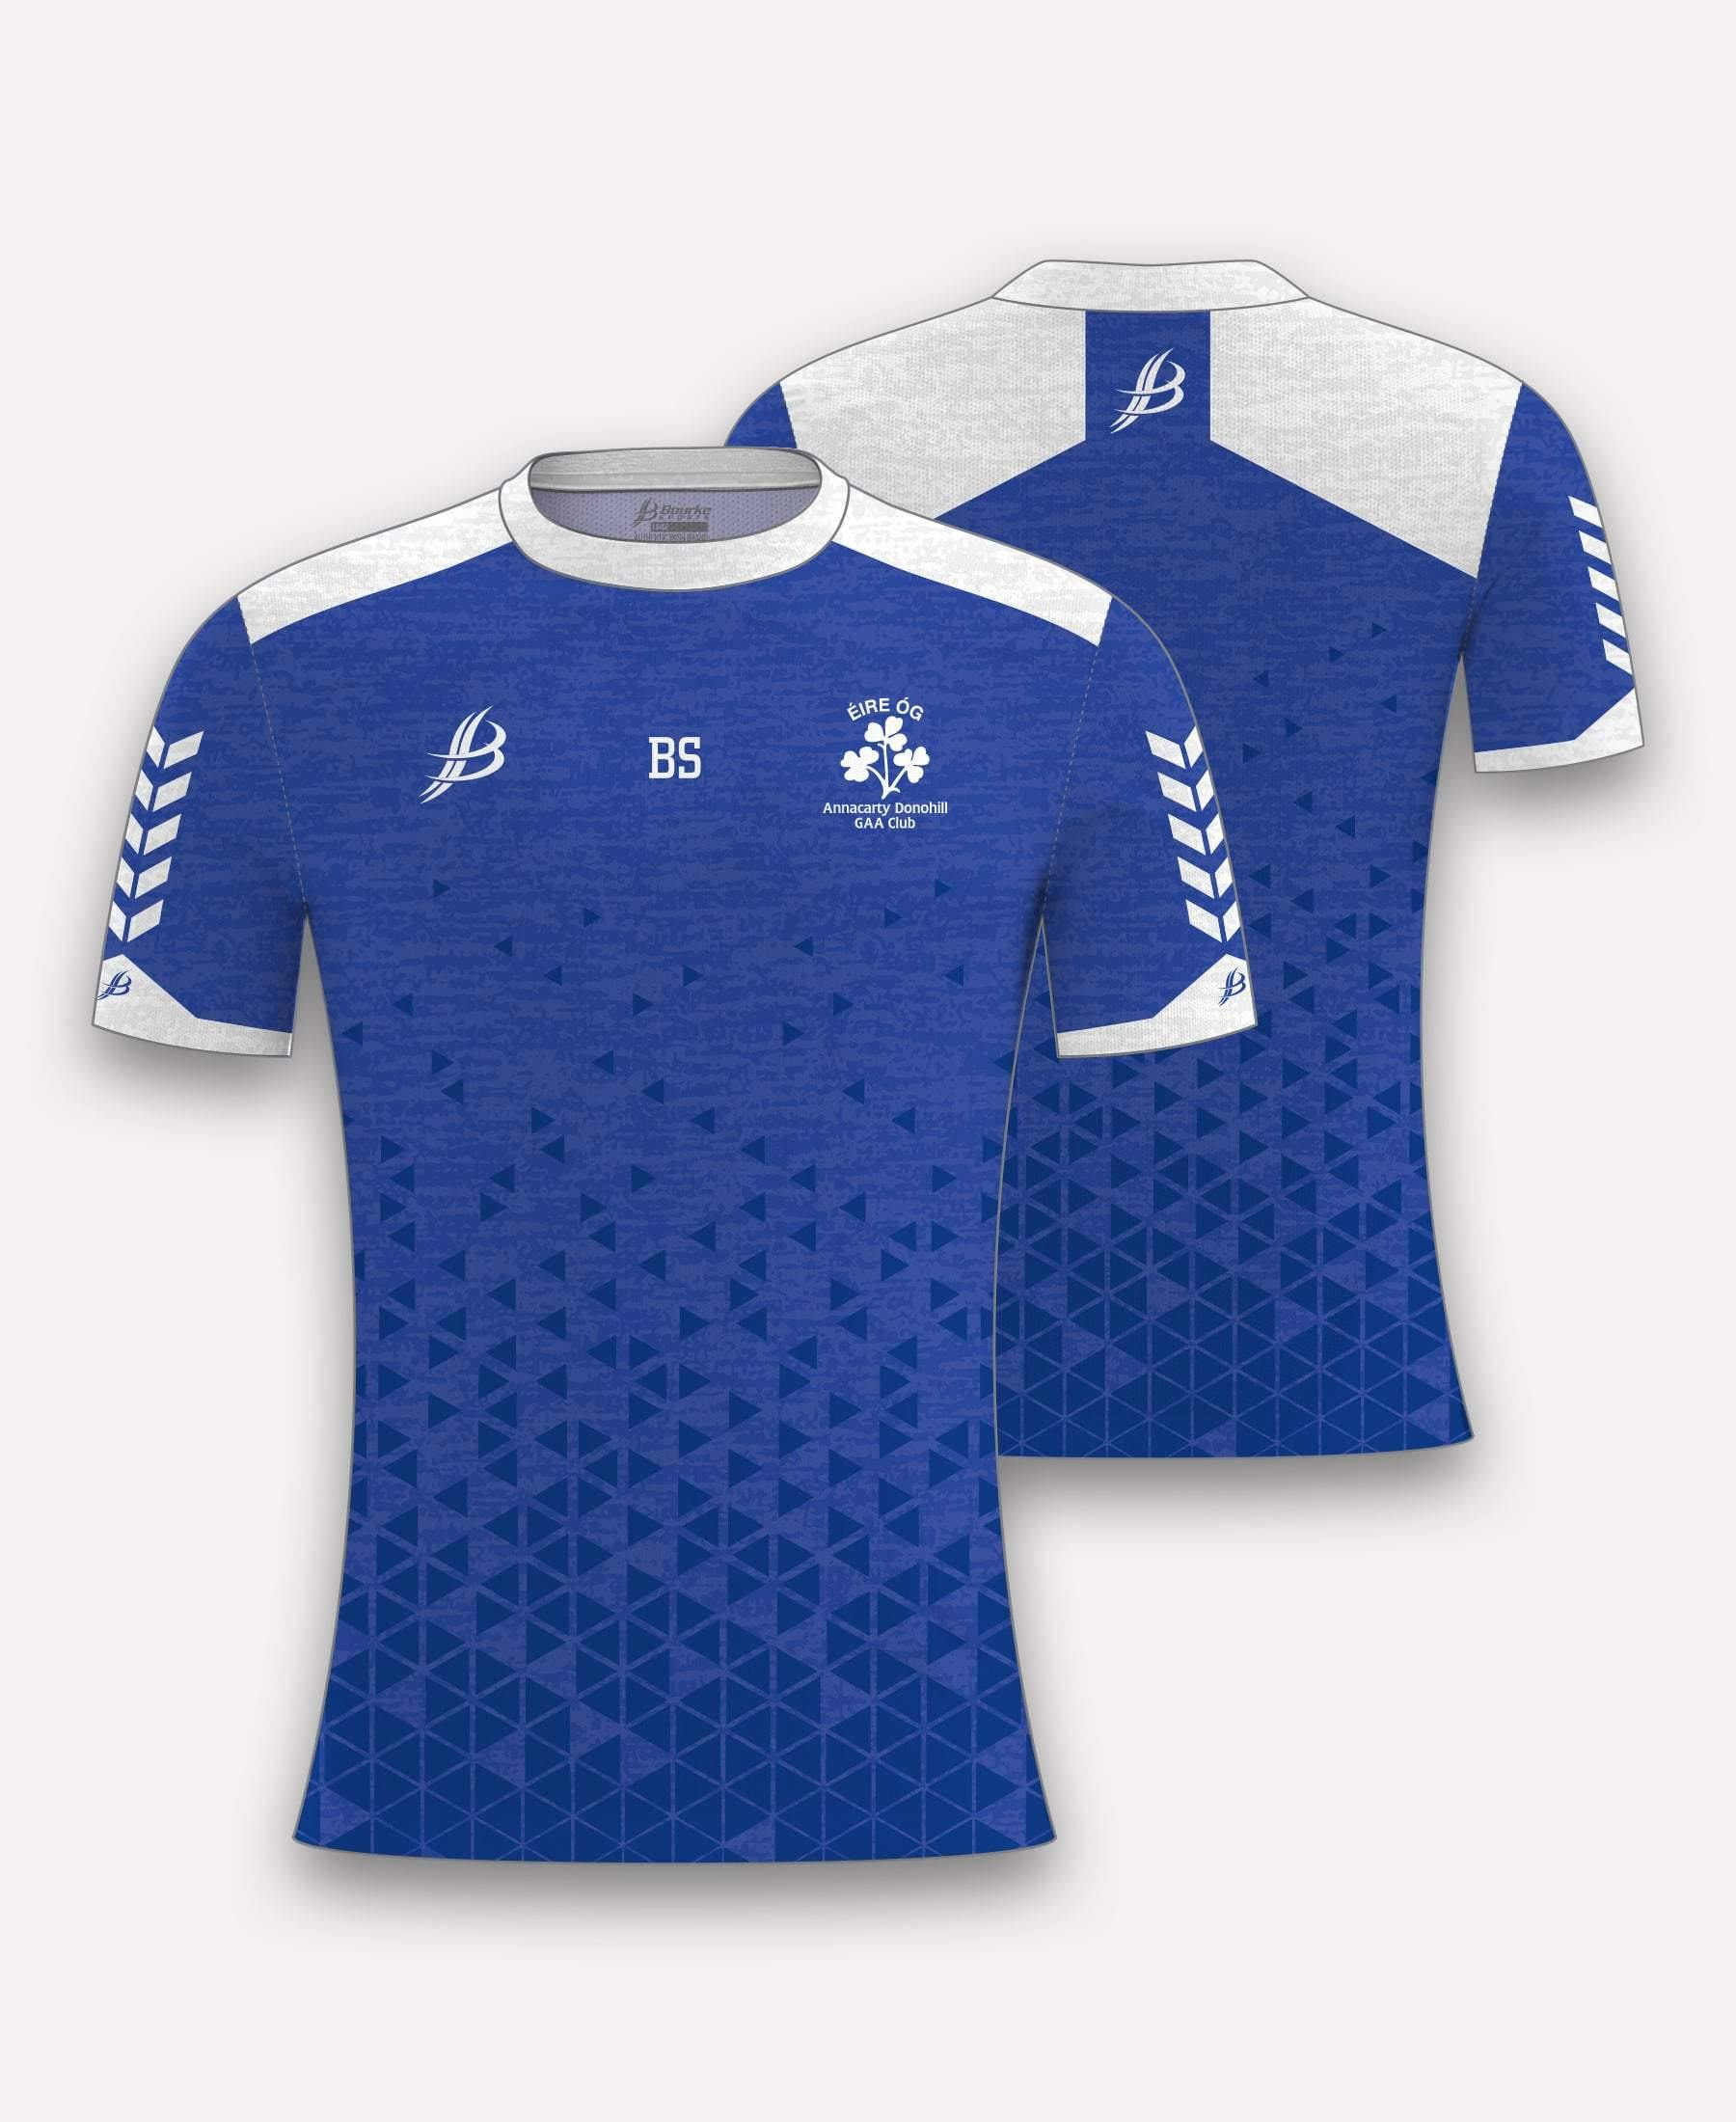 Eire Og Annacarty Donohill GAA Jersey - Bourke Sports Limited